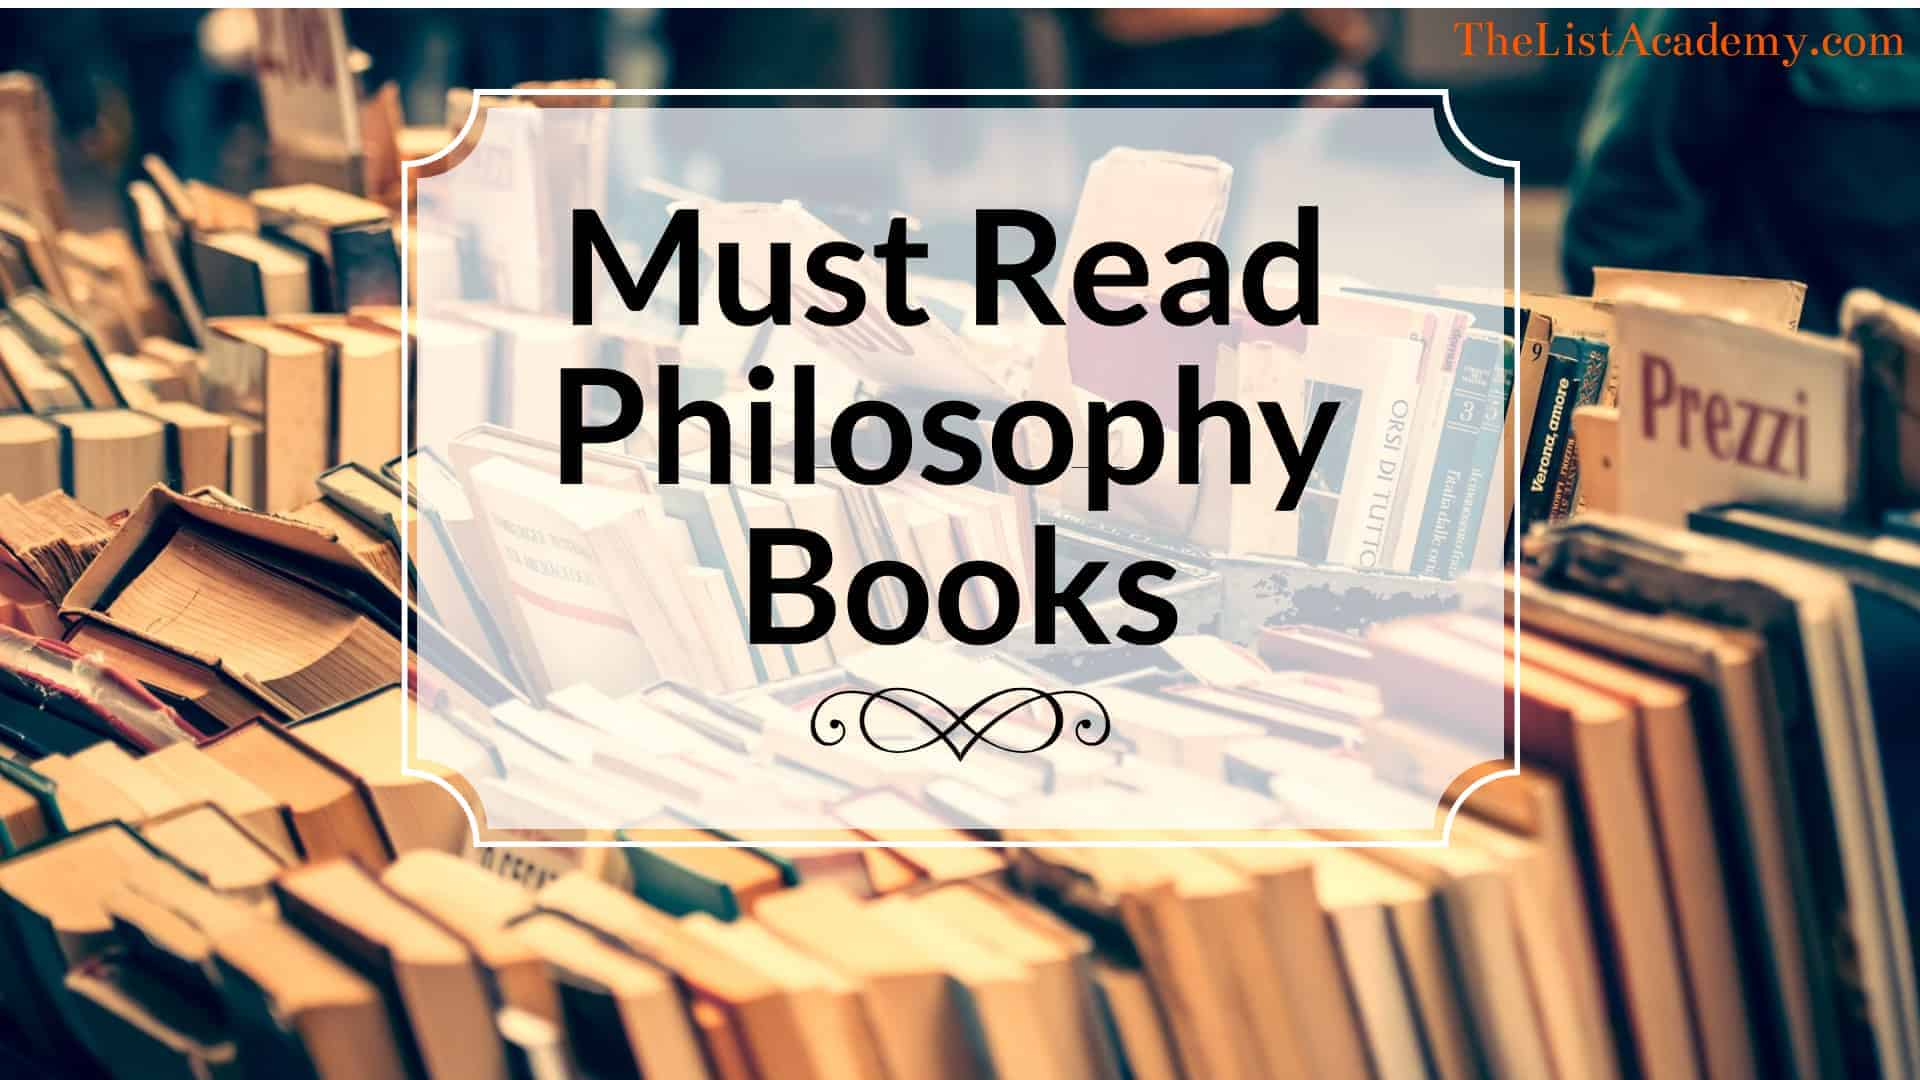 Cover Image For List : 366 Must Read Philosophy Books